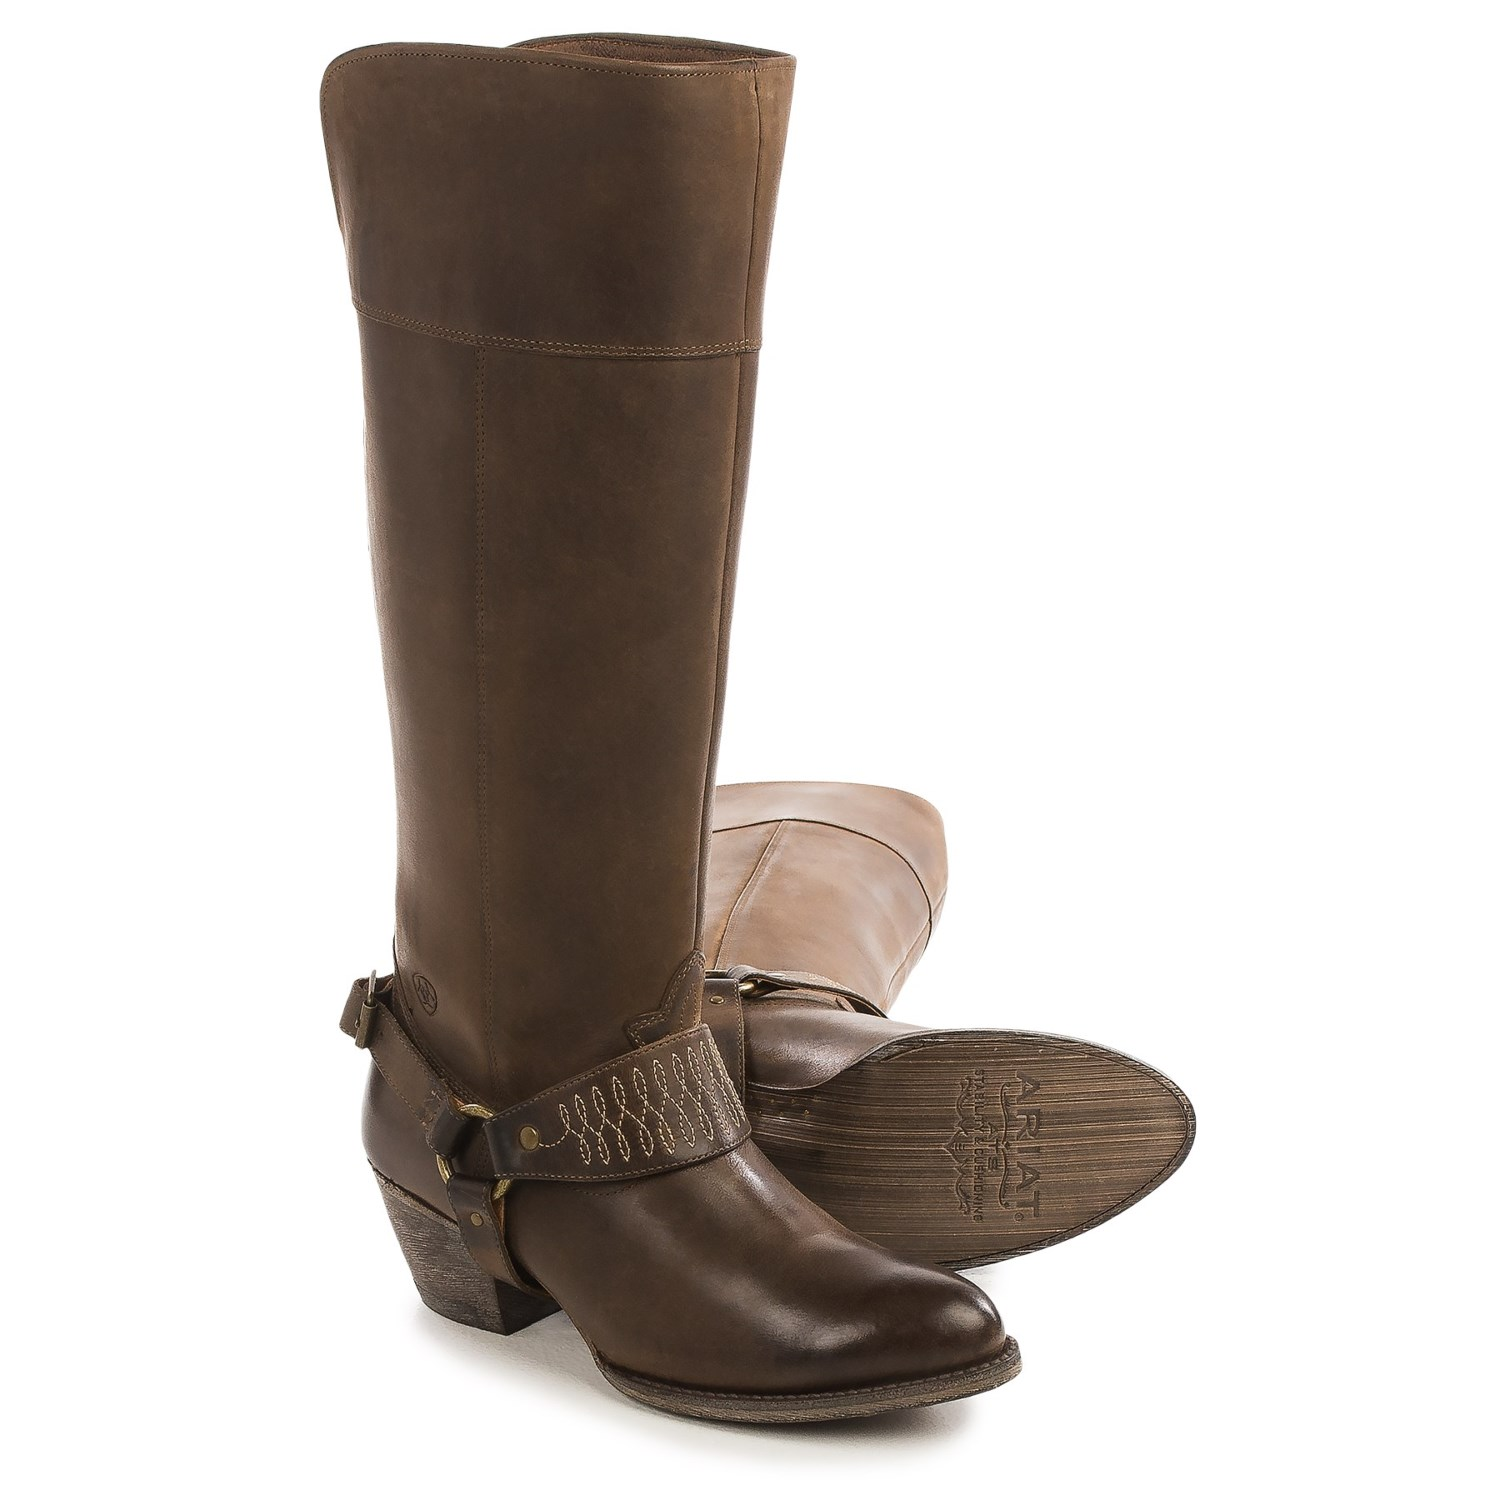 Ariat Sadler Tall Cowboy Boots For Women Save 46